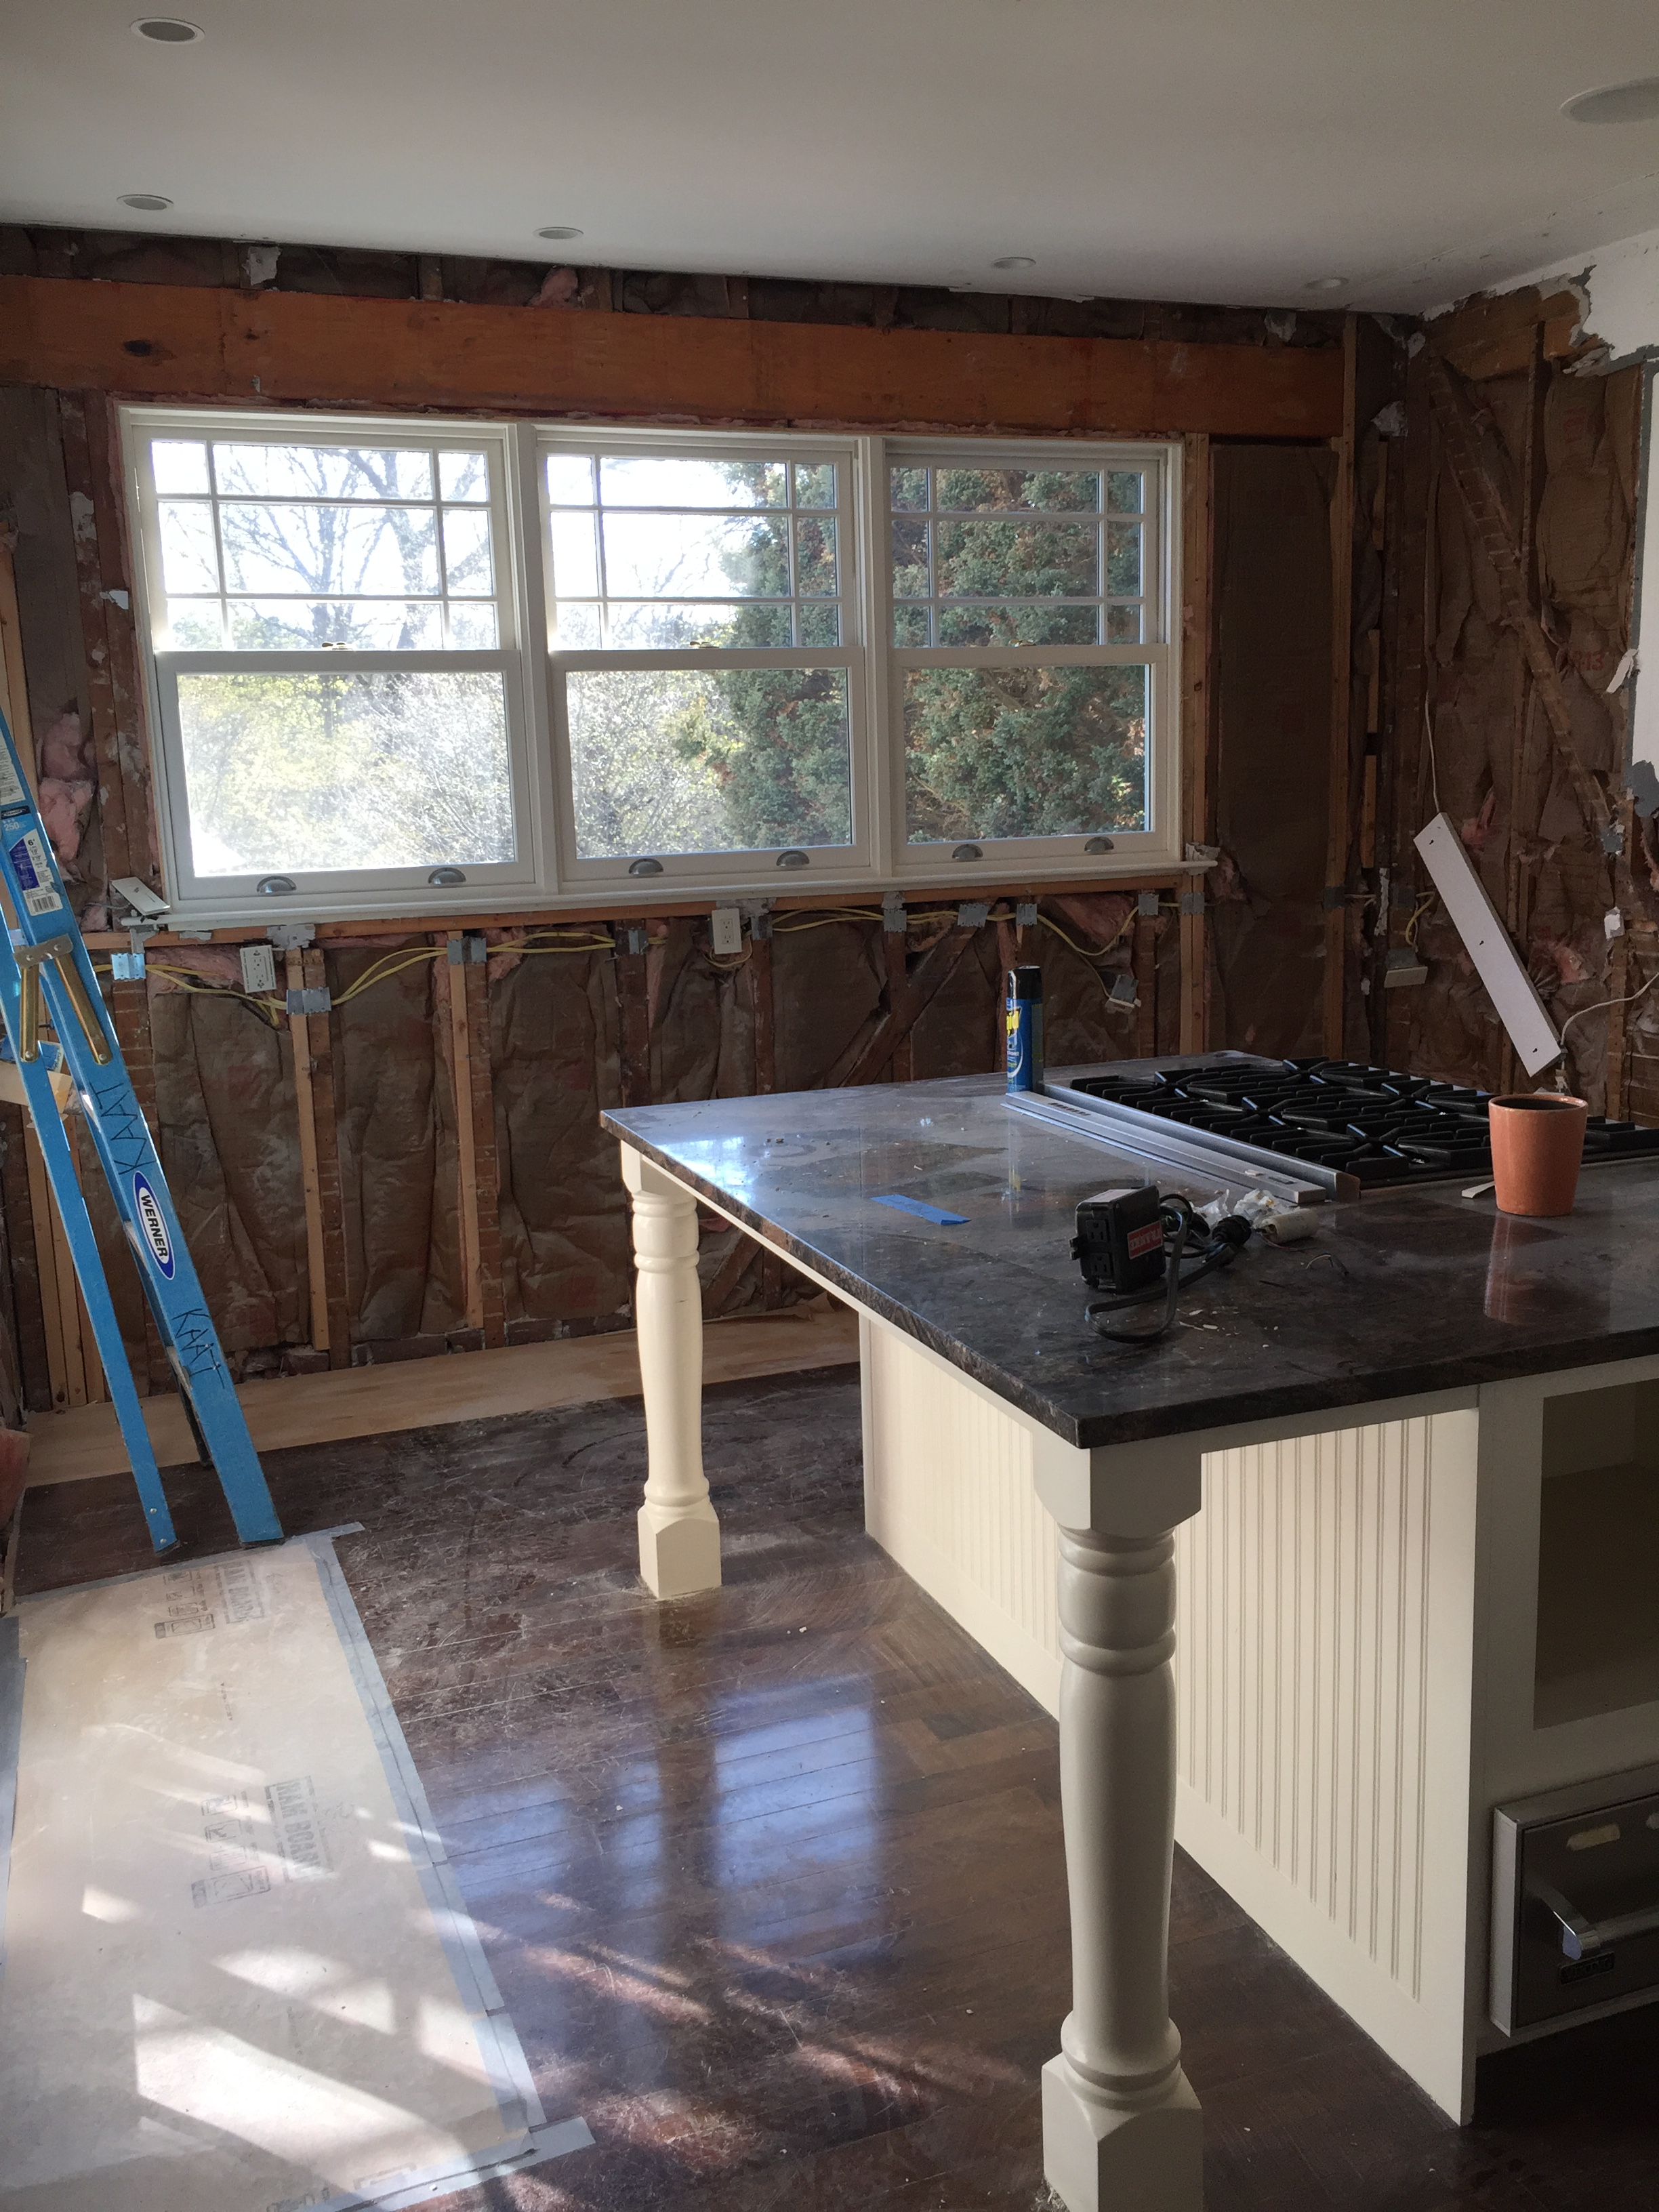 Day 1: Project 1896 (Our Home Renovation)   Interiors for Families   Kelly Rogers Interiors